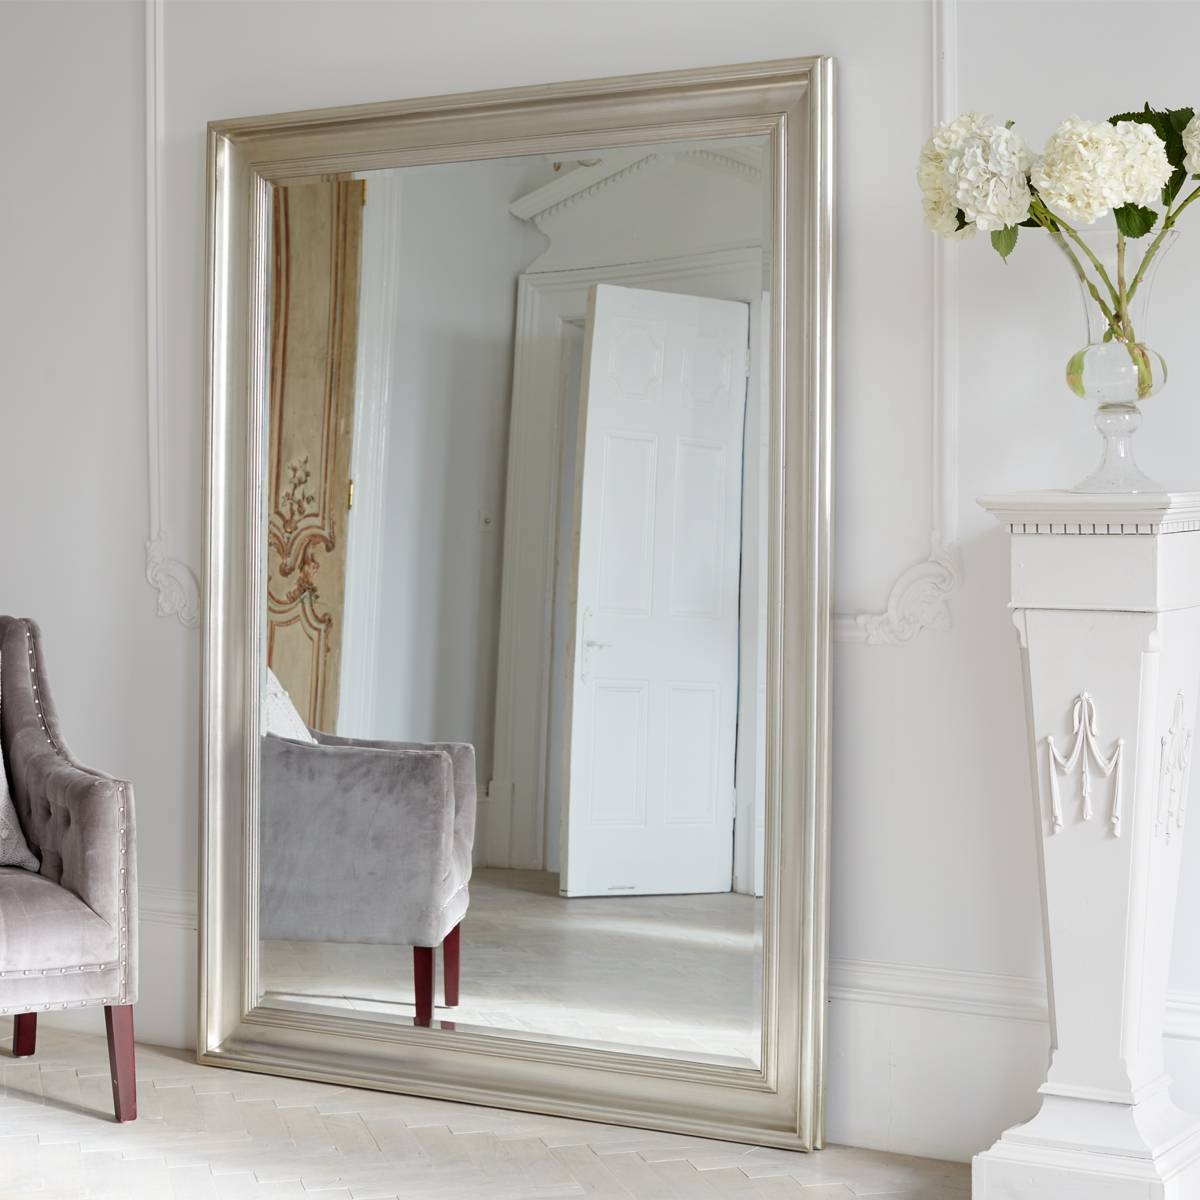 Homeware: Oval Full Length Standing Mirror | Large Floor Mirrors inside Large Floor Standing Mirrors (Image 16 of 25)